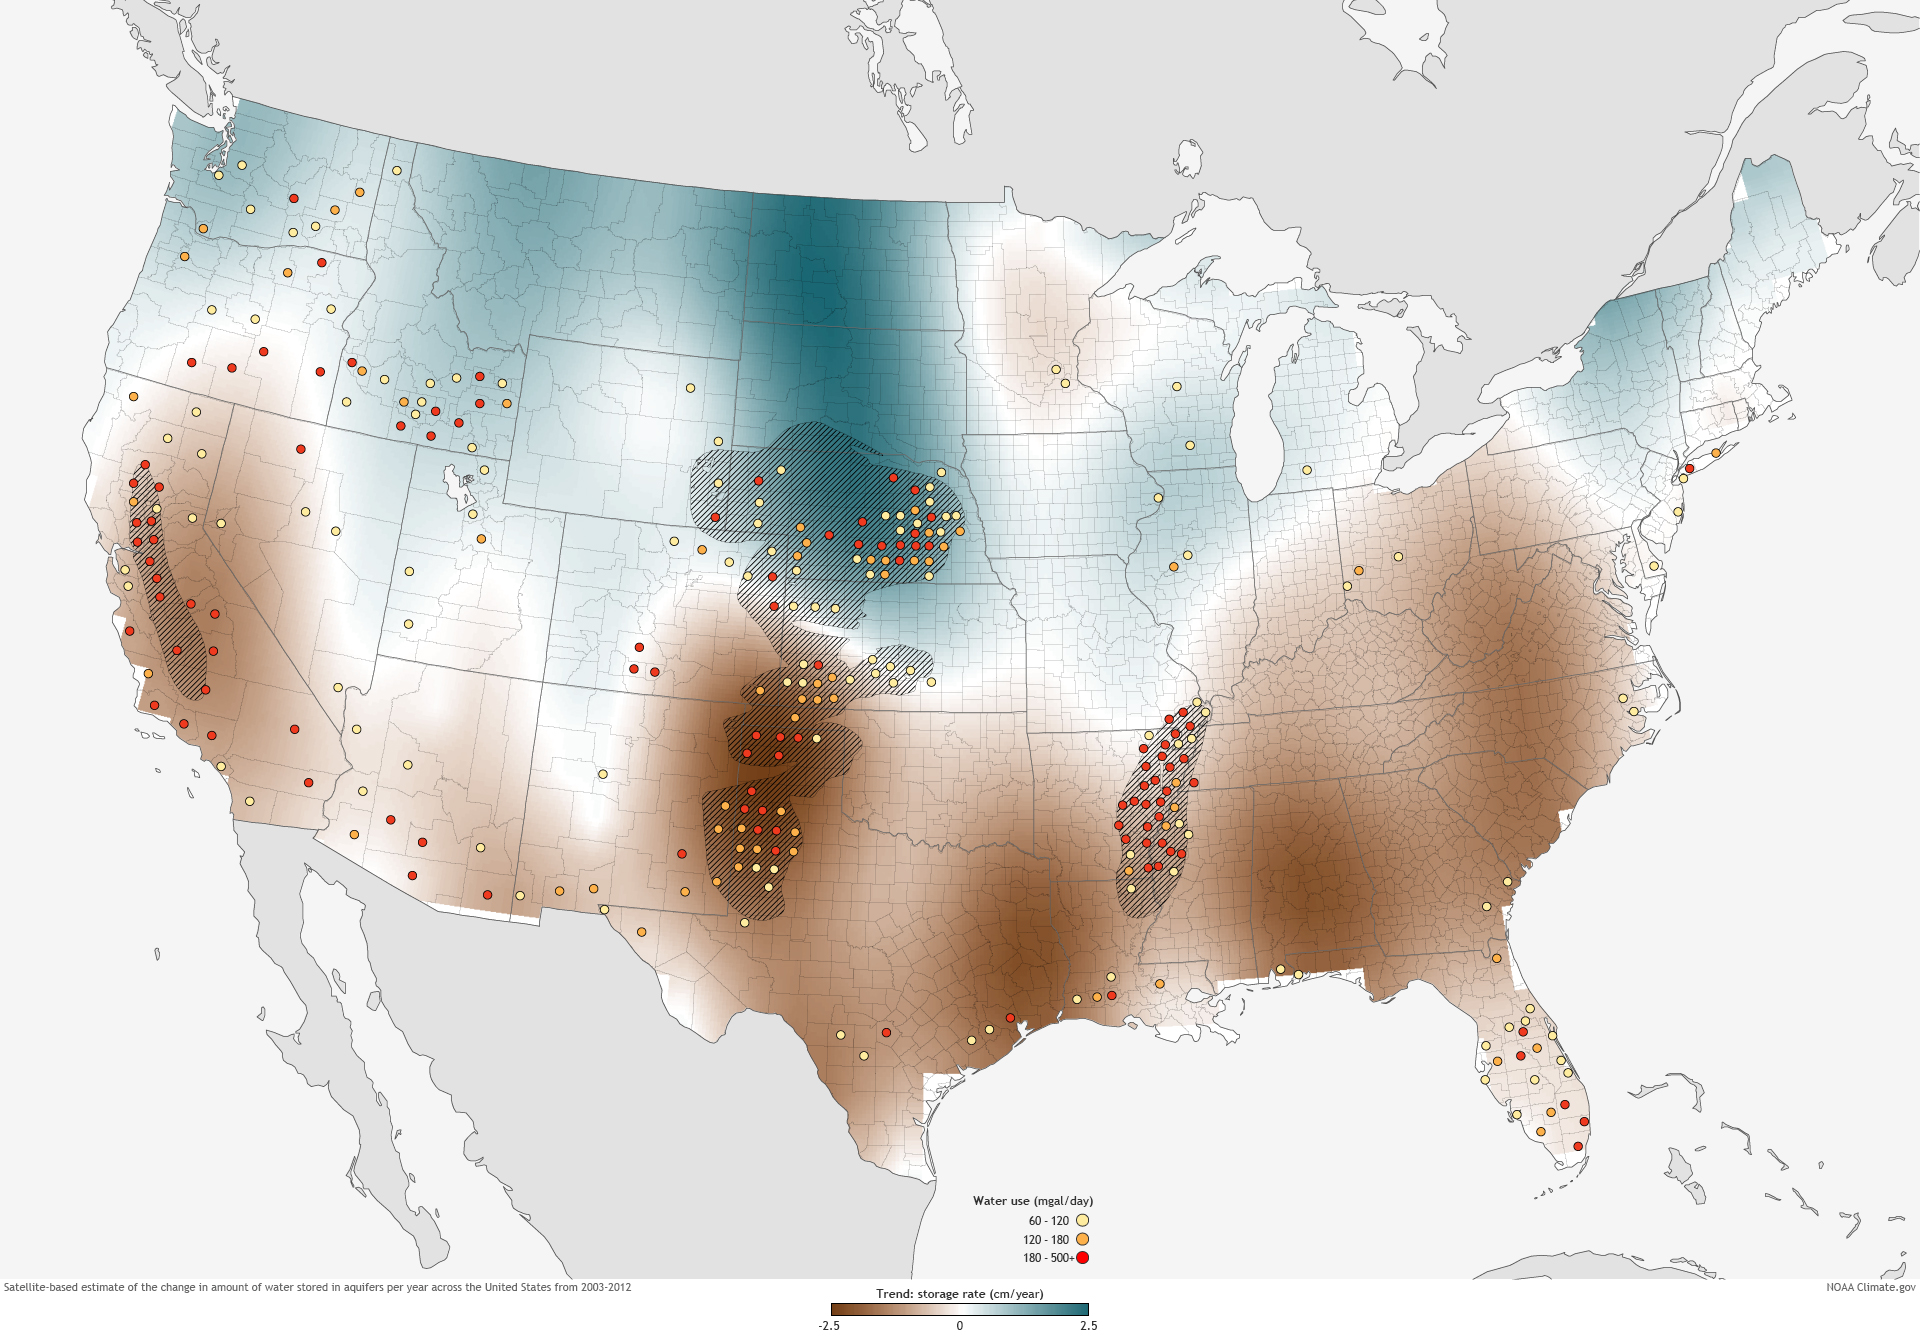 Groundwater Declines Across US South Over Past Decade NOAA - Map of aquifers in us